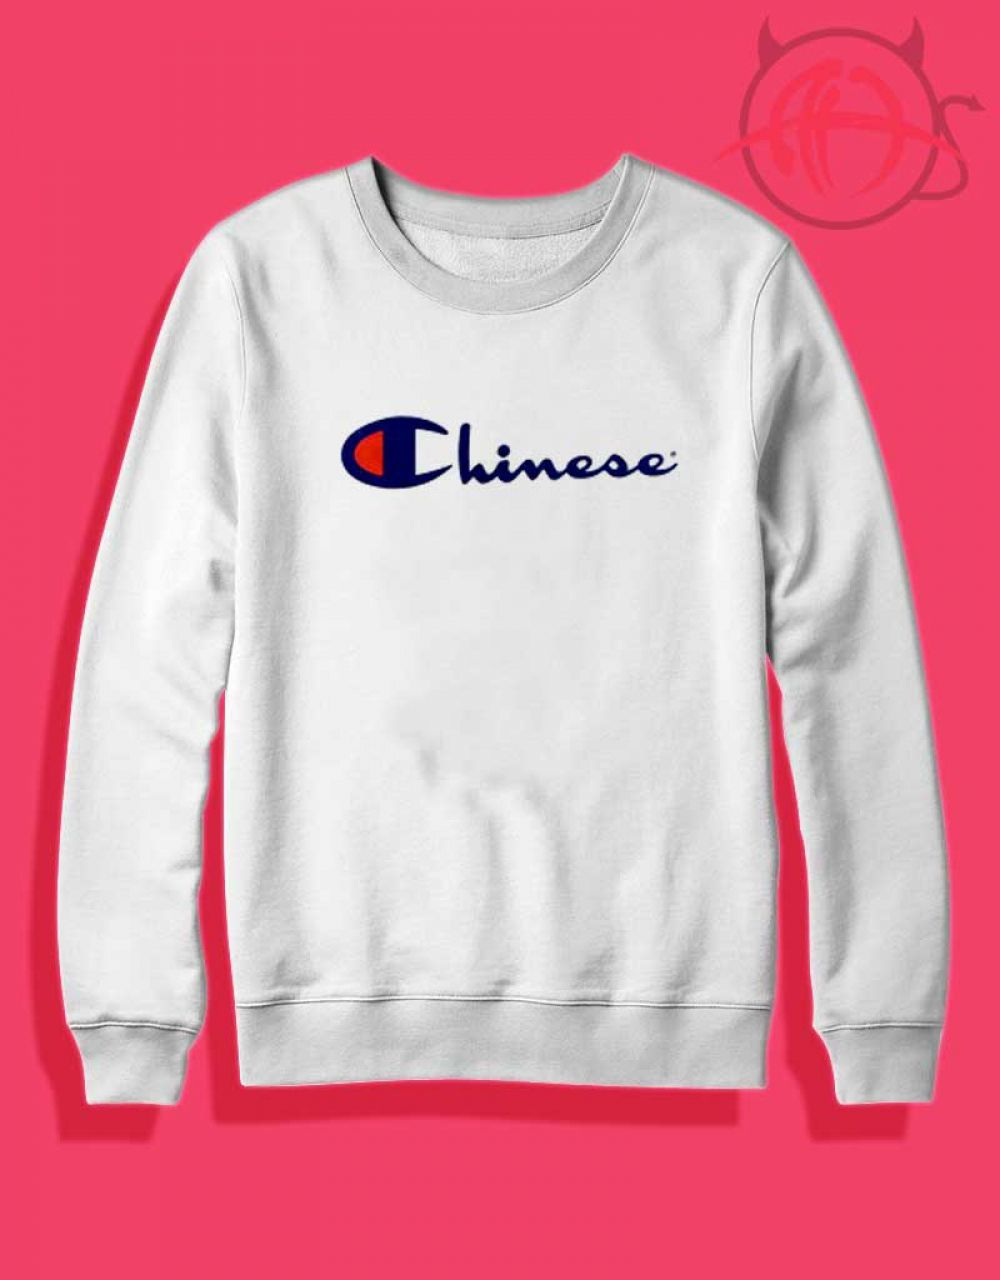 Chinese Champion Sweatshirt 27 50 Tee Hype Outfits Outfit Hypebeast Fashion Shirt Tees Tops Te Sweatshirts Crew Neck Sweatshirt Champion Sweatshirt [ 1280 x 1000 Pixel ]